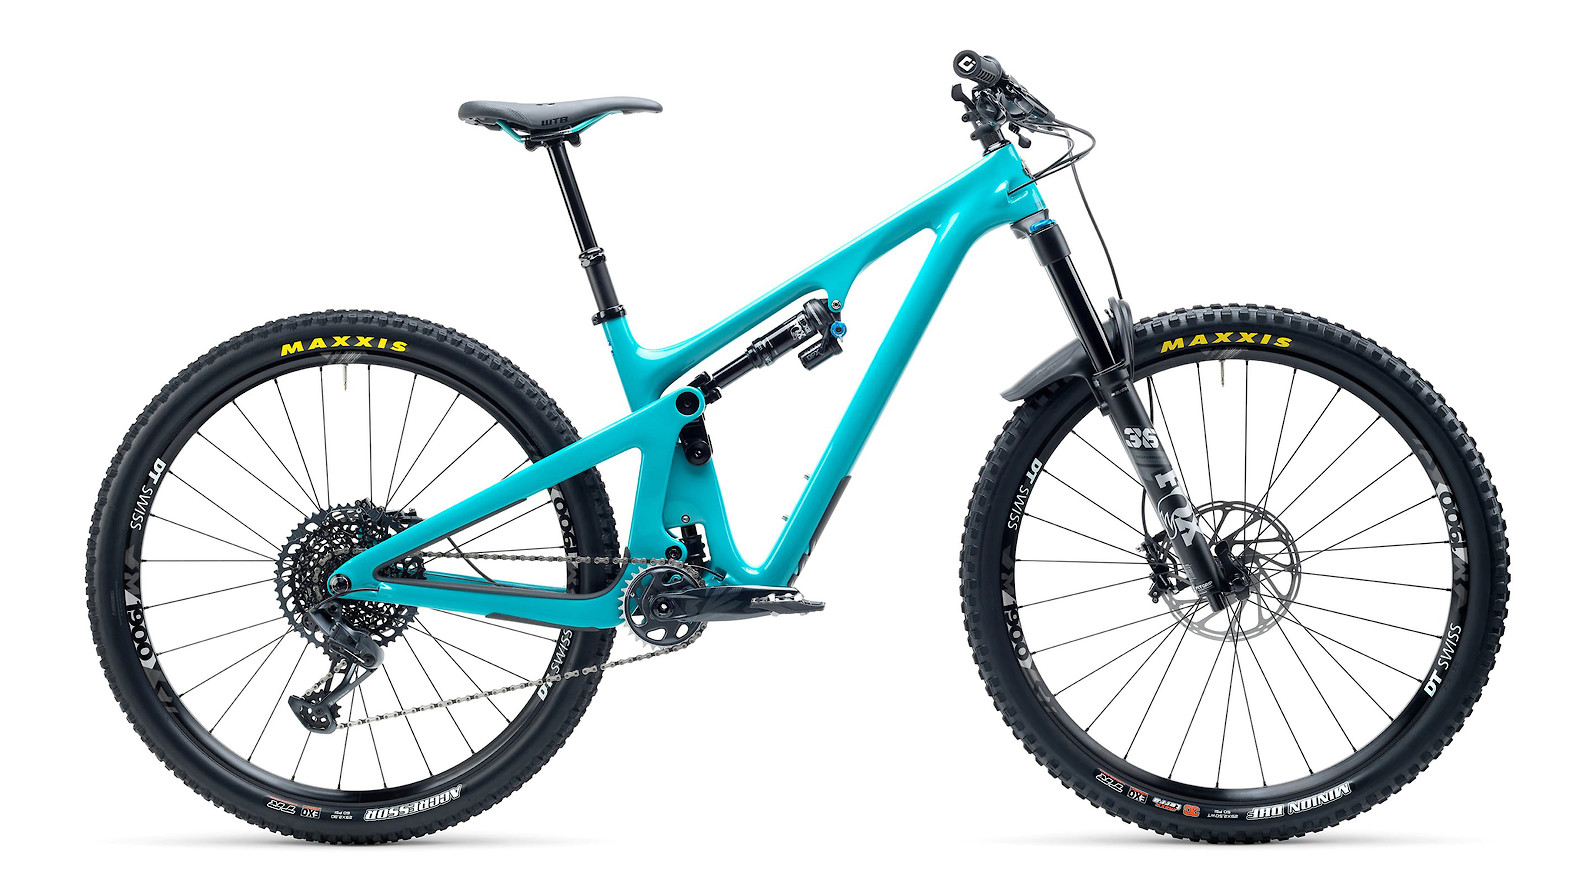 Yeti SB130 C2 Series GX Eagle 12spd Carbon Mountain Bike 2021 Turq